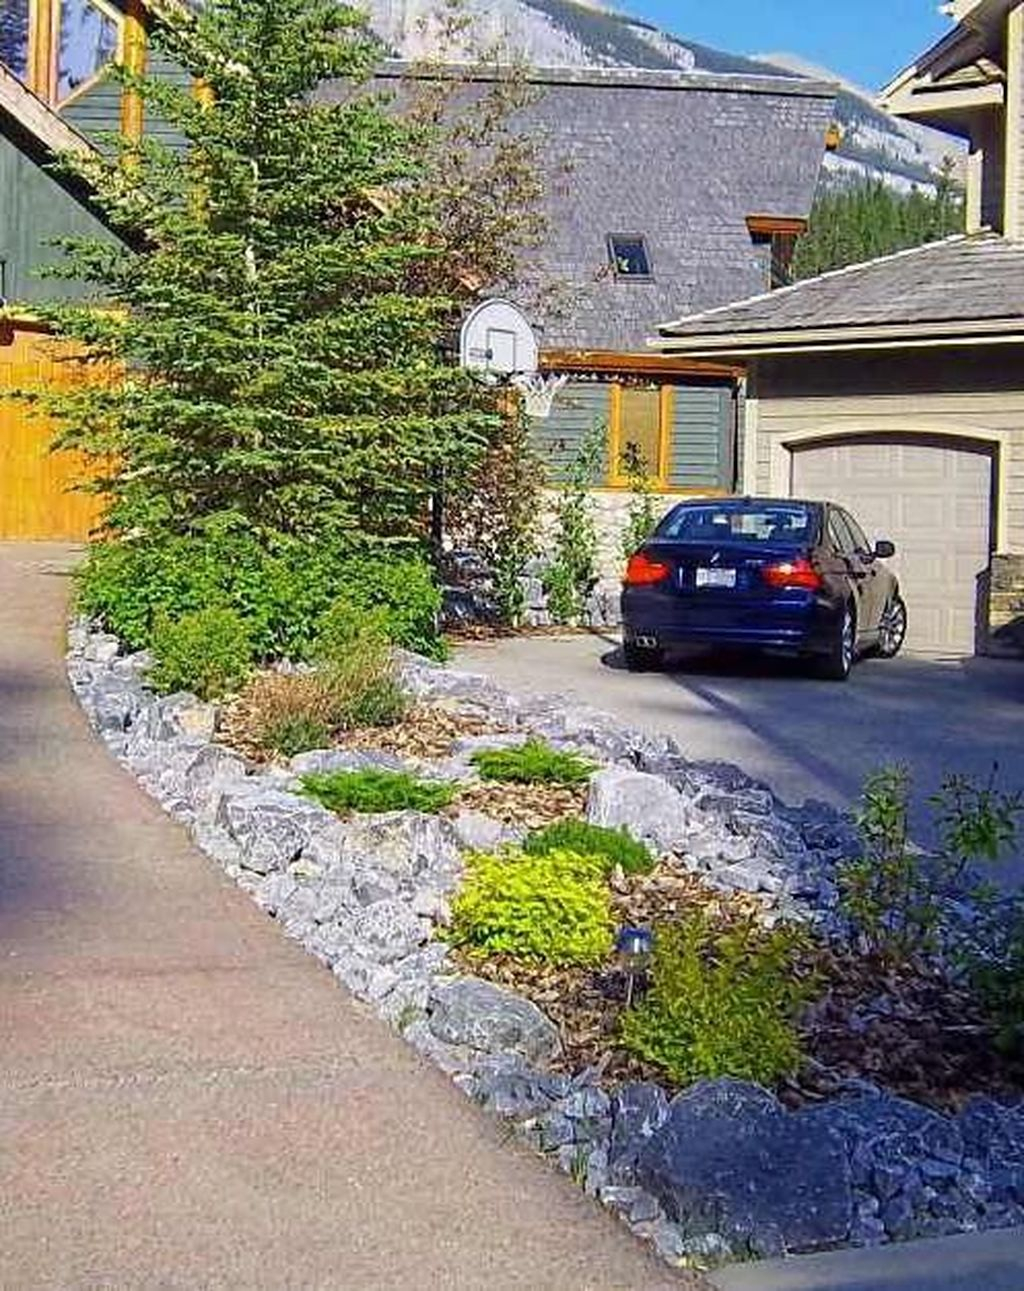 Fabulous Driveway Landscaping Design Ideas For Your Home To Try Asap 04